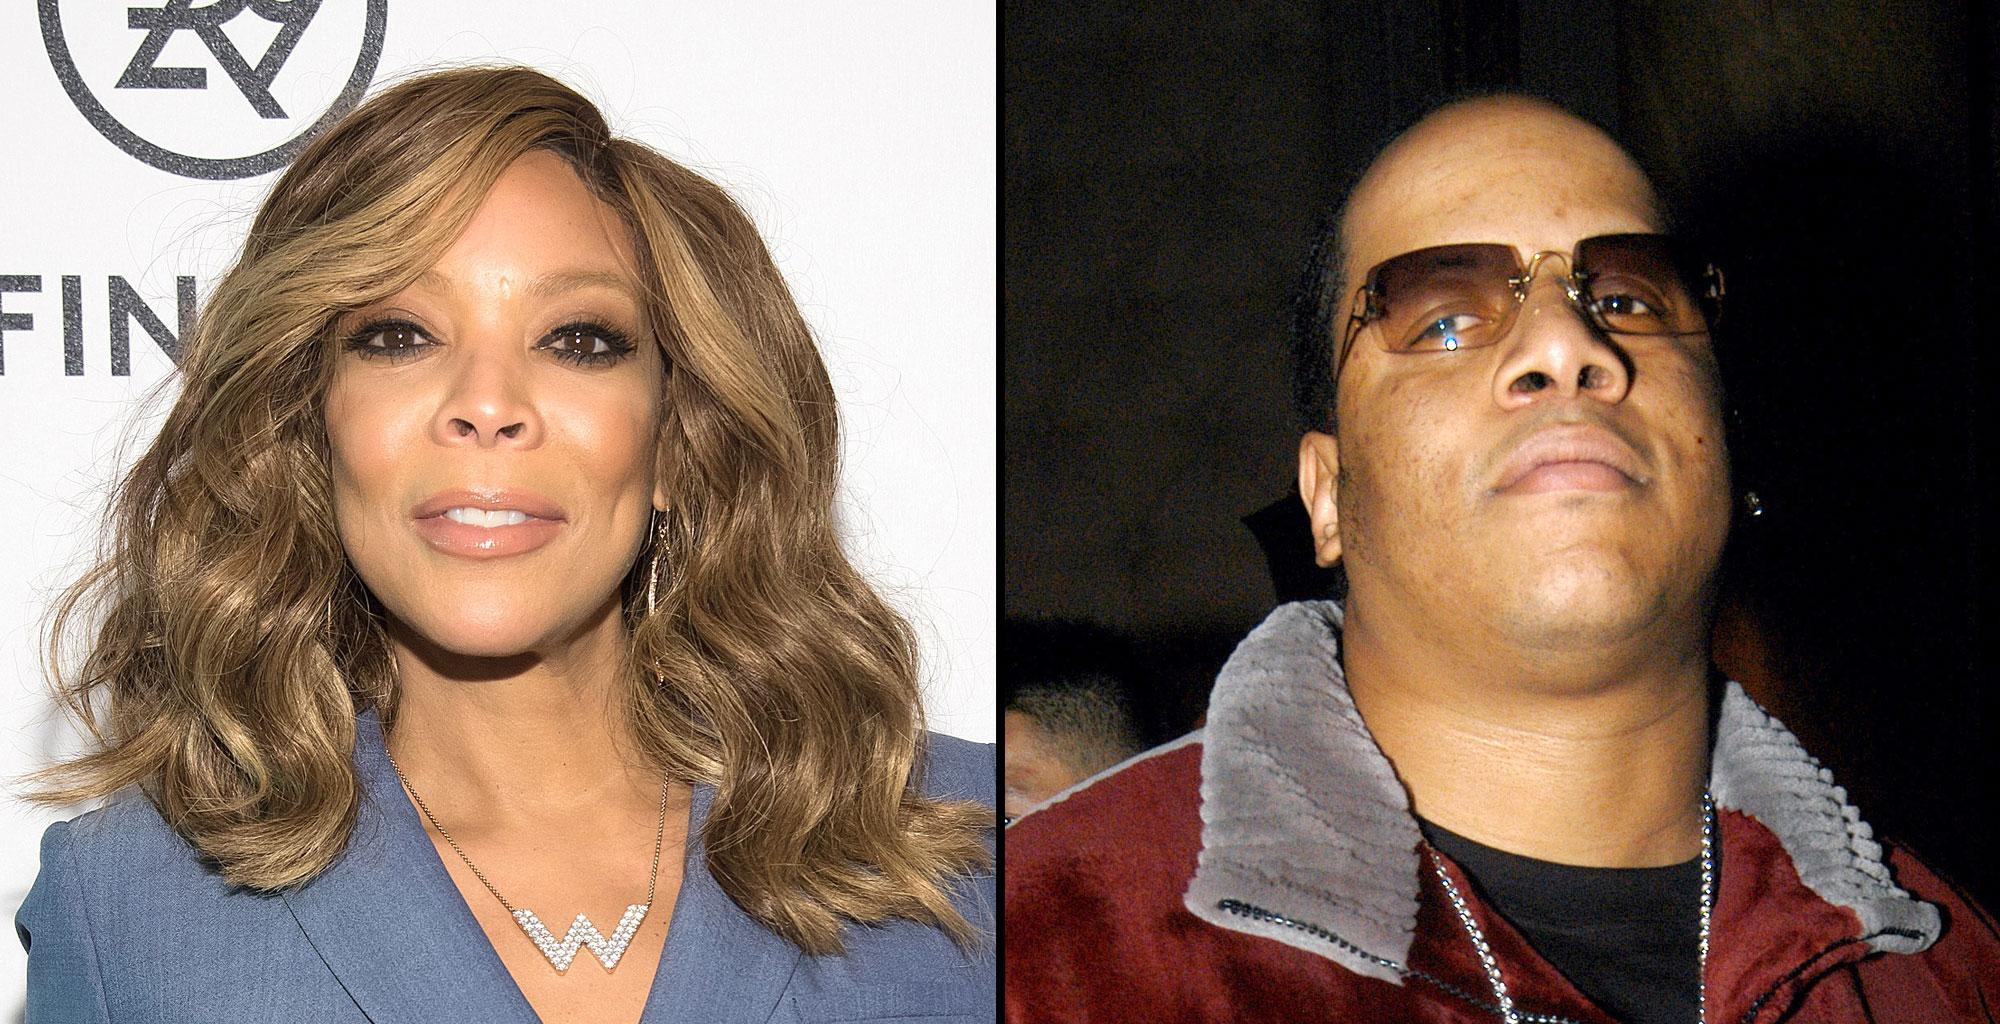 Wendy Williams Happier Than Ever Since Her And Kevin Hunter's Divorce - She Reportedly Feels Finally 'Free!'